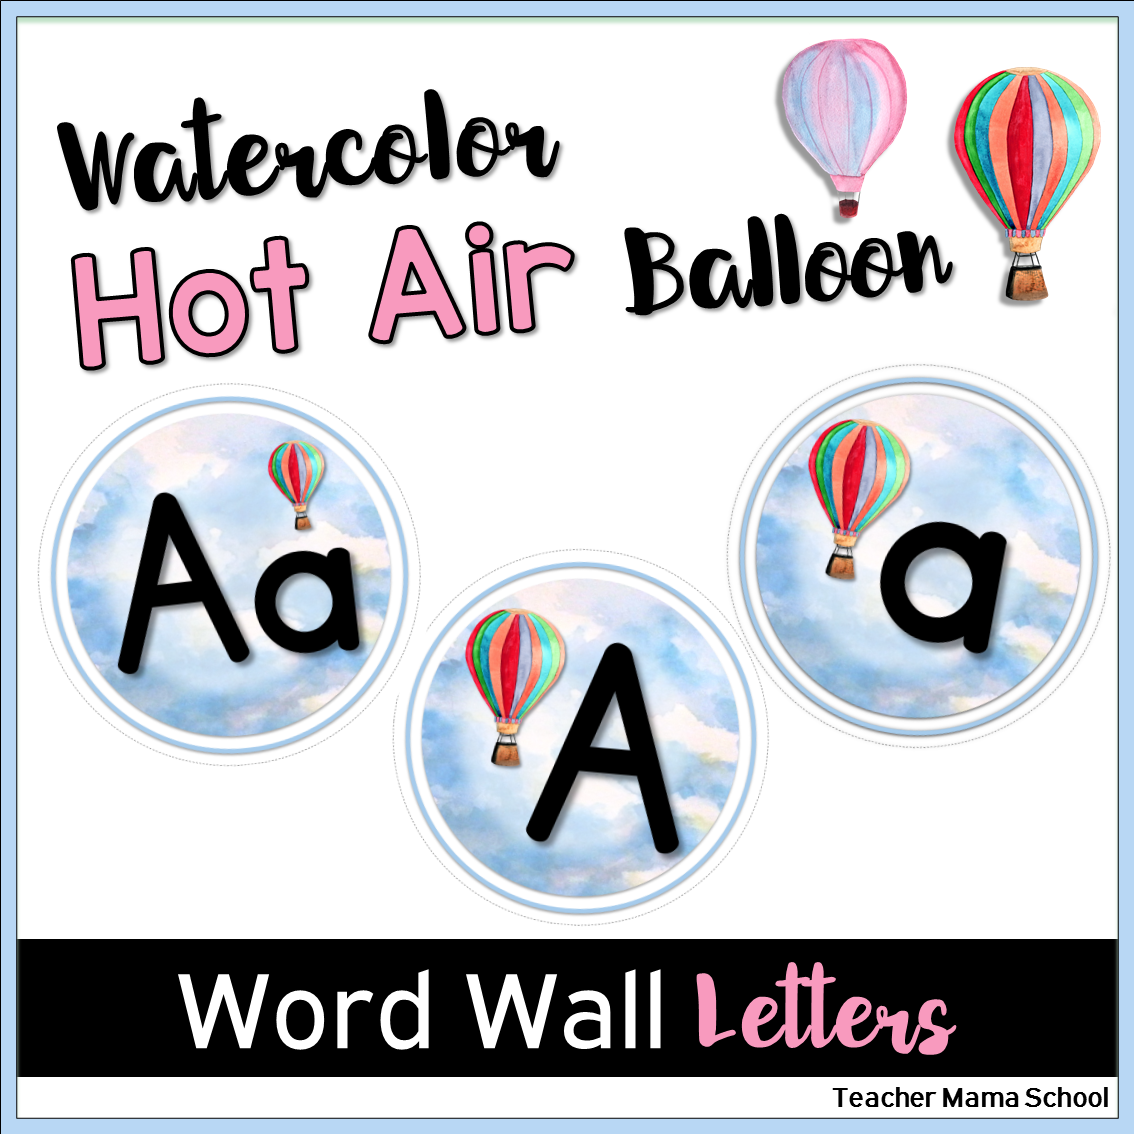 Word Wall Letters Stunning Word Wall Letters Only  Watercolor Hot Air Balloon Theme  Word Decorating Design